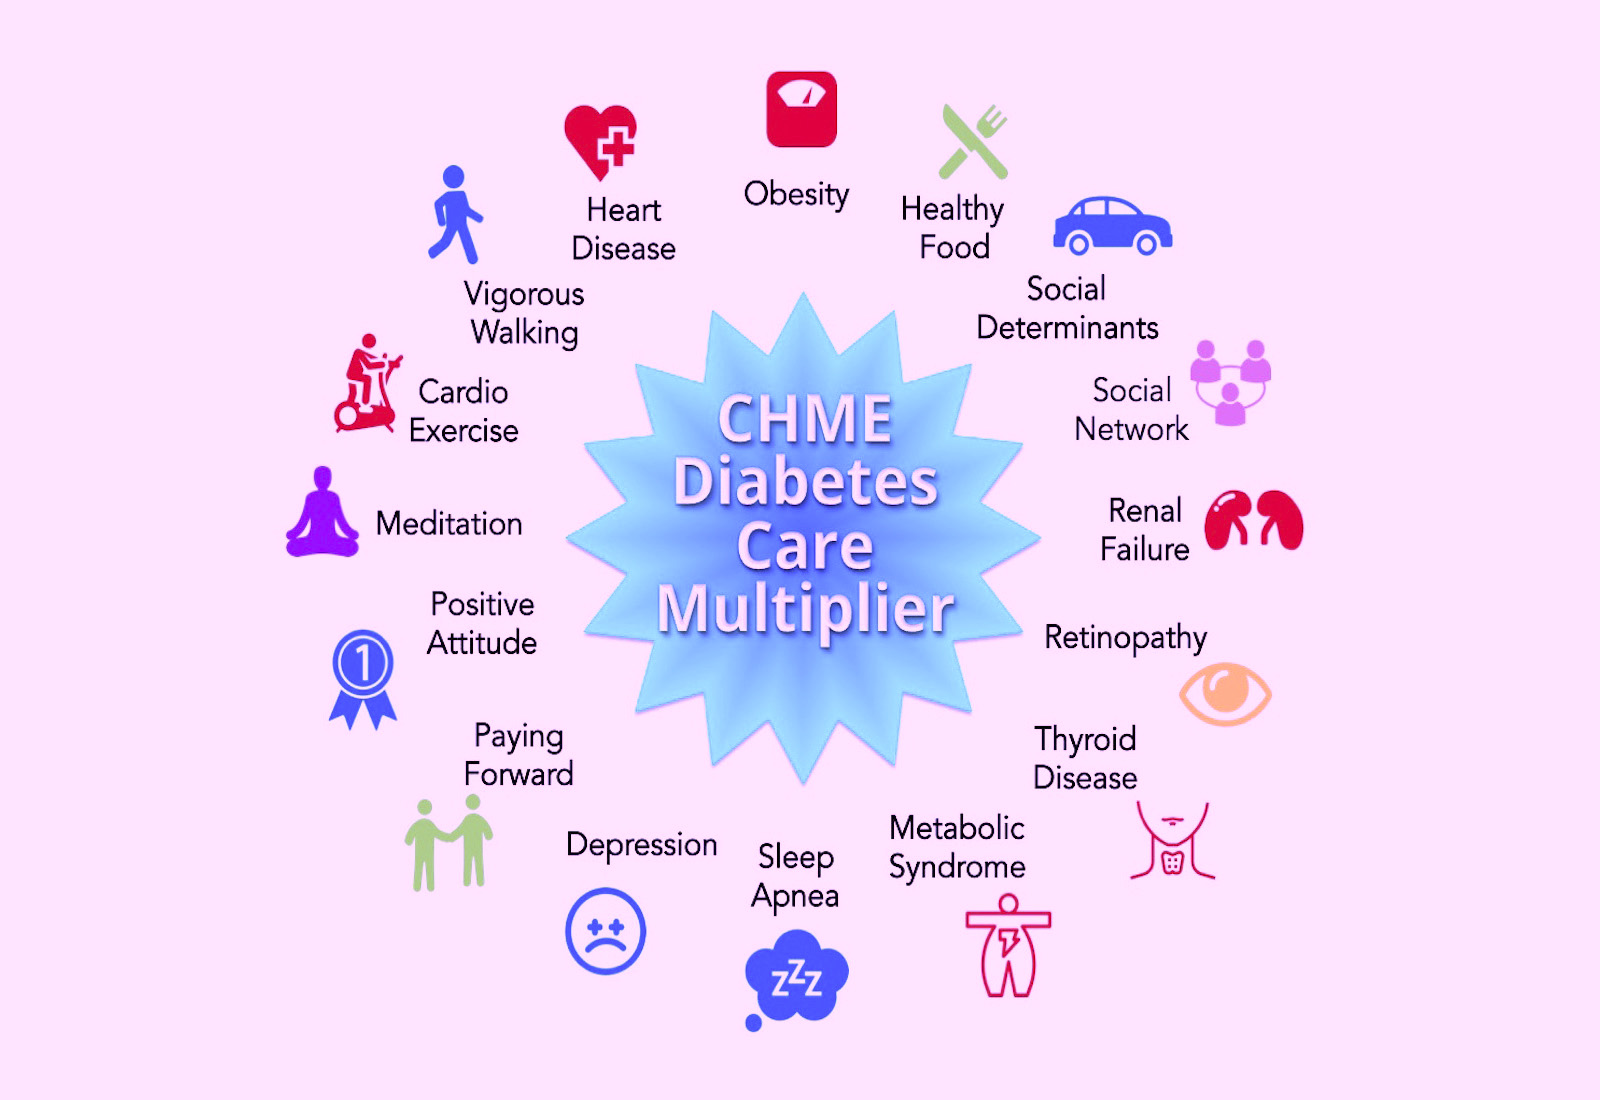 CHME for DIABETES